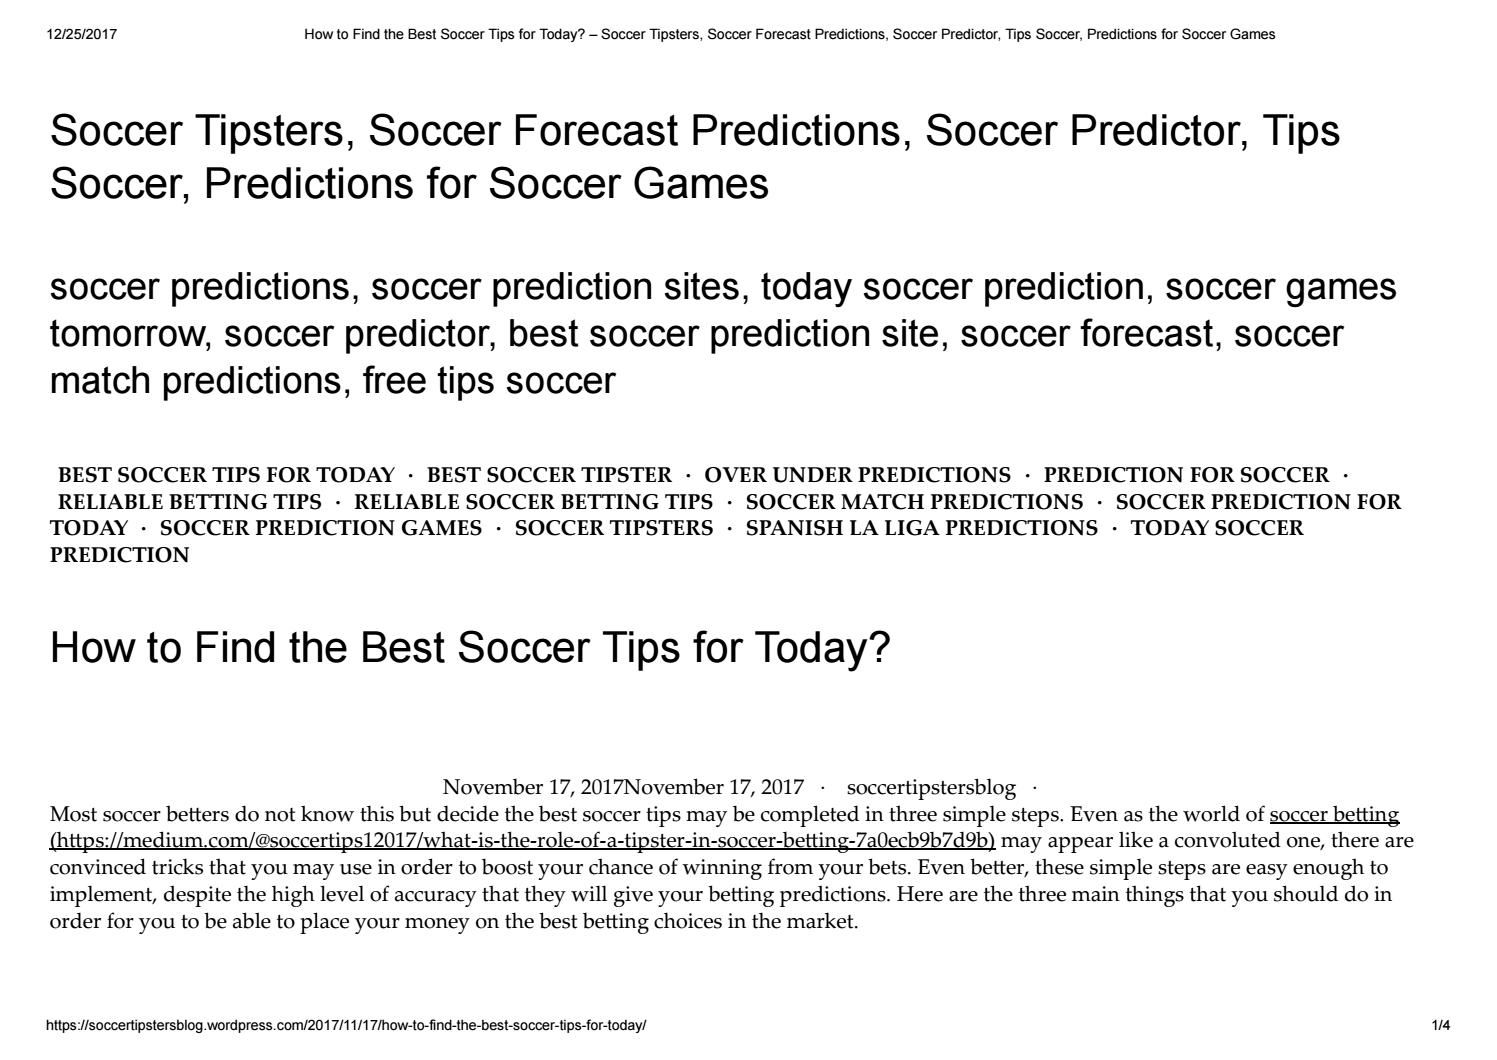 How to find the best soccer tips for today   Soccer